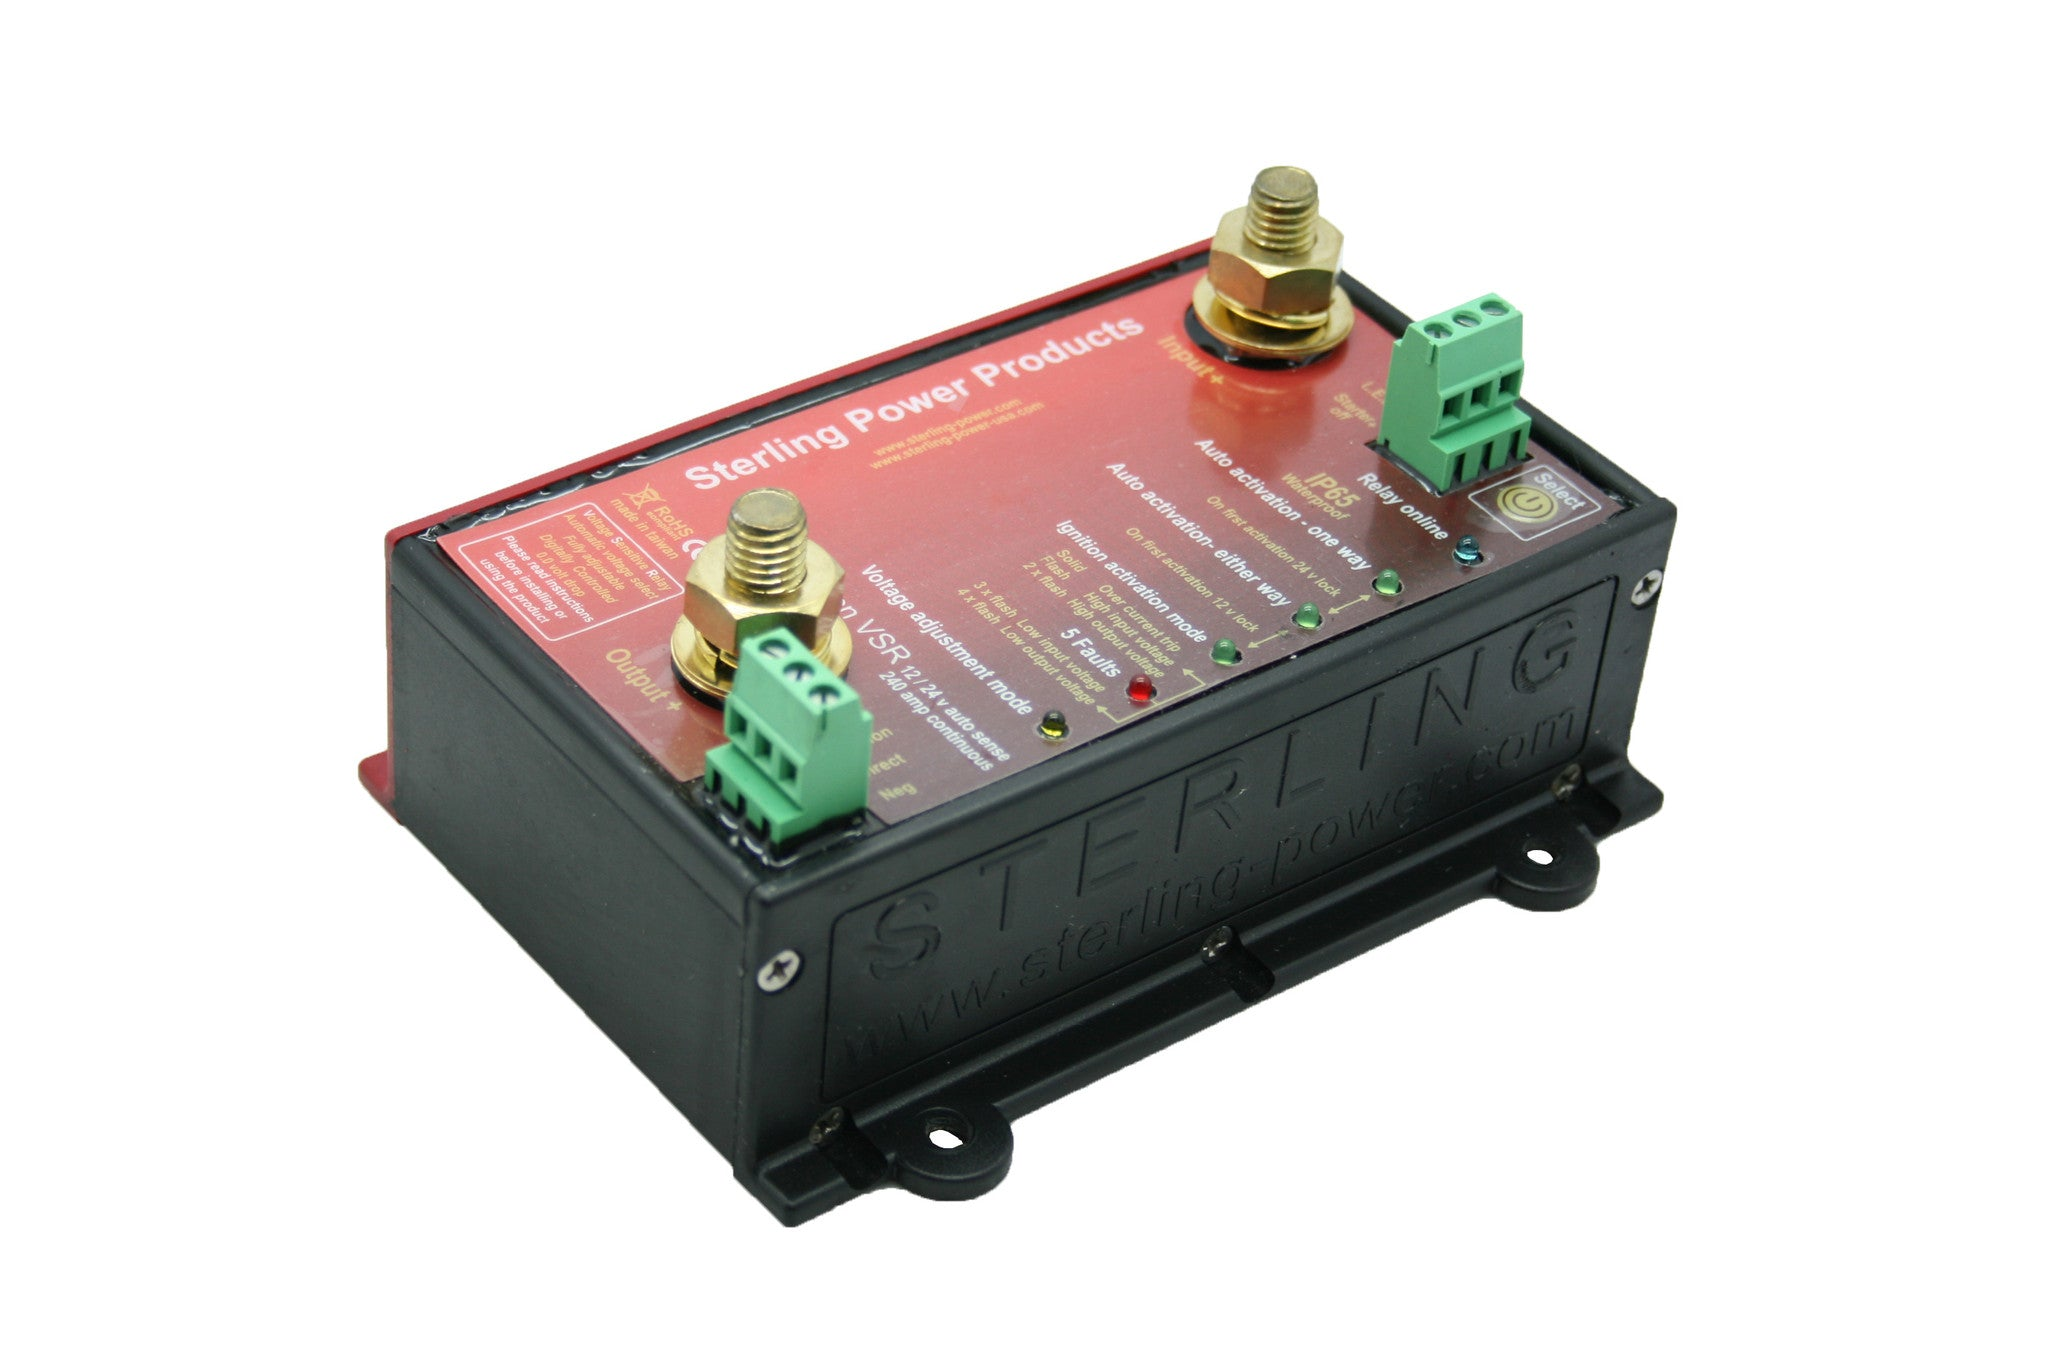 Voltage Sensitive Relay Pro Connect Vsr Sterling Power Products Connects For Example A Simple Regulator From Mains